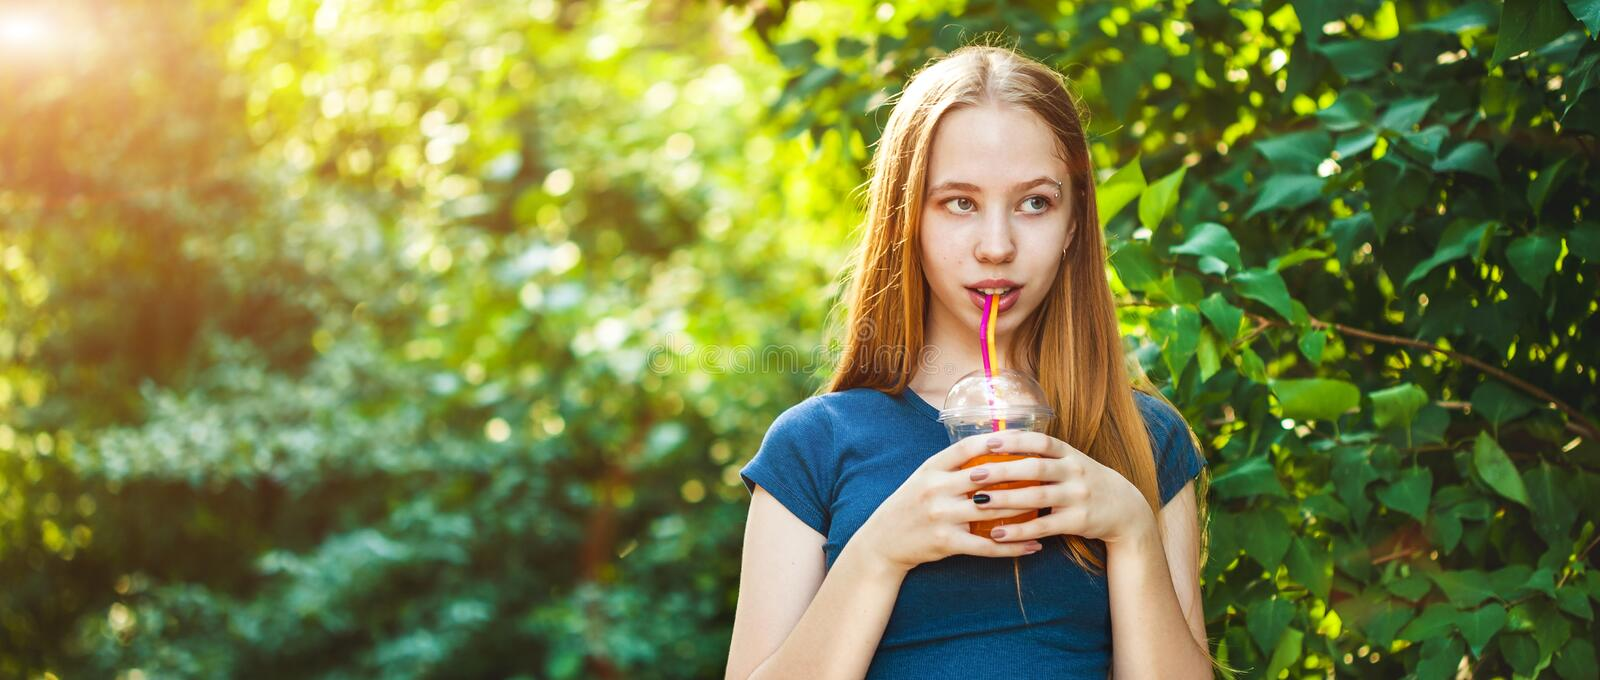 Young beautiful girl drinks freshly squeezed juice on a background of juicy foliage Banner concept stock image